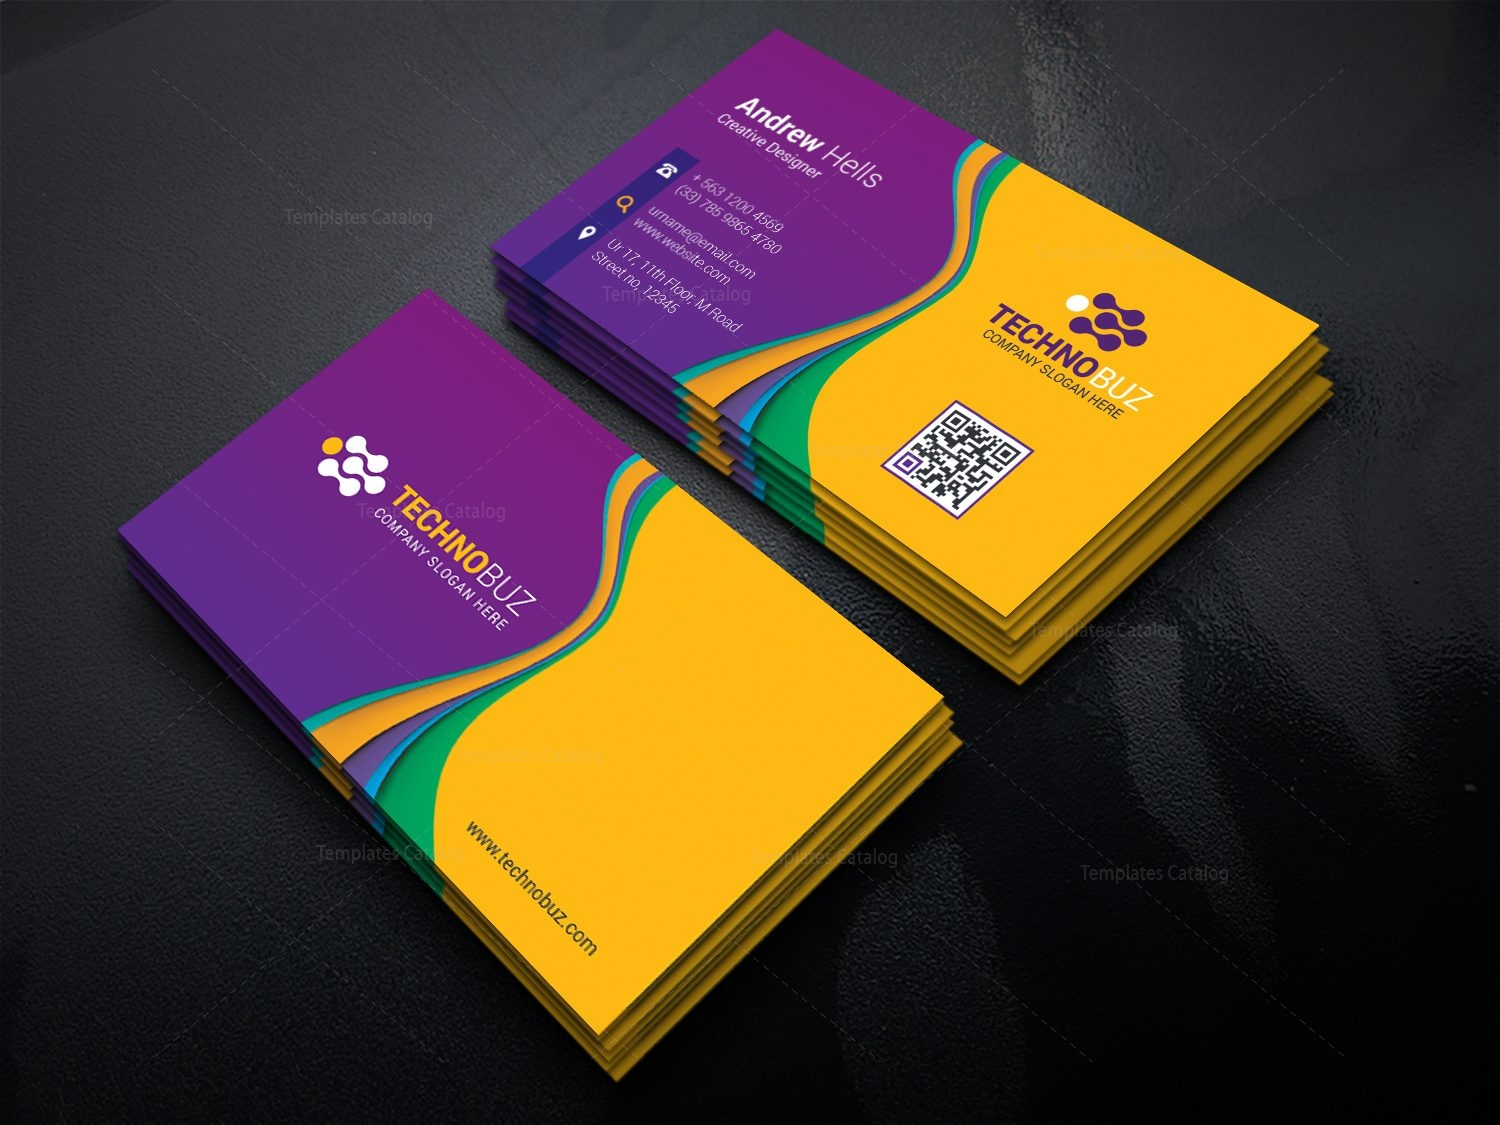 Polaris Modern Business Card Template 000770 - Template Catalog